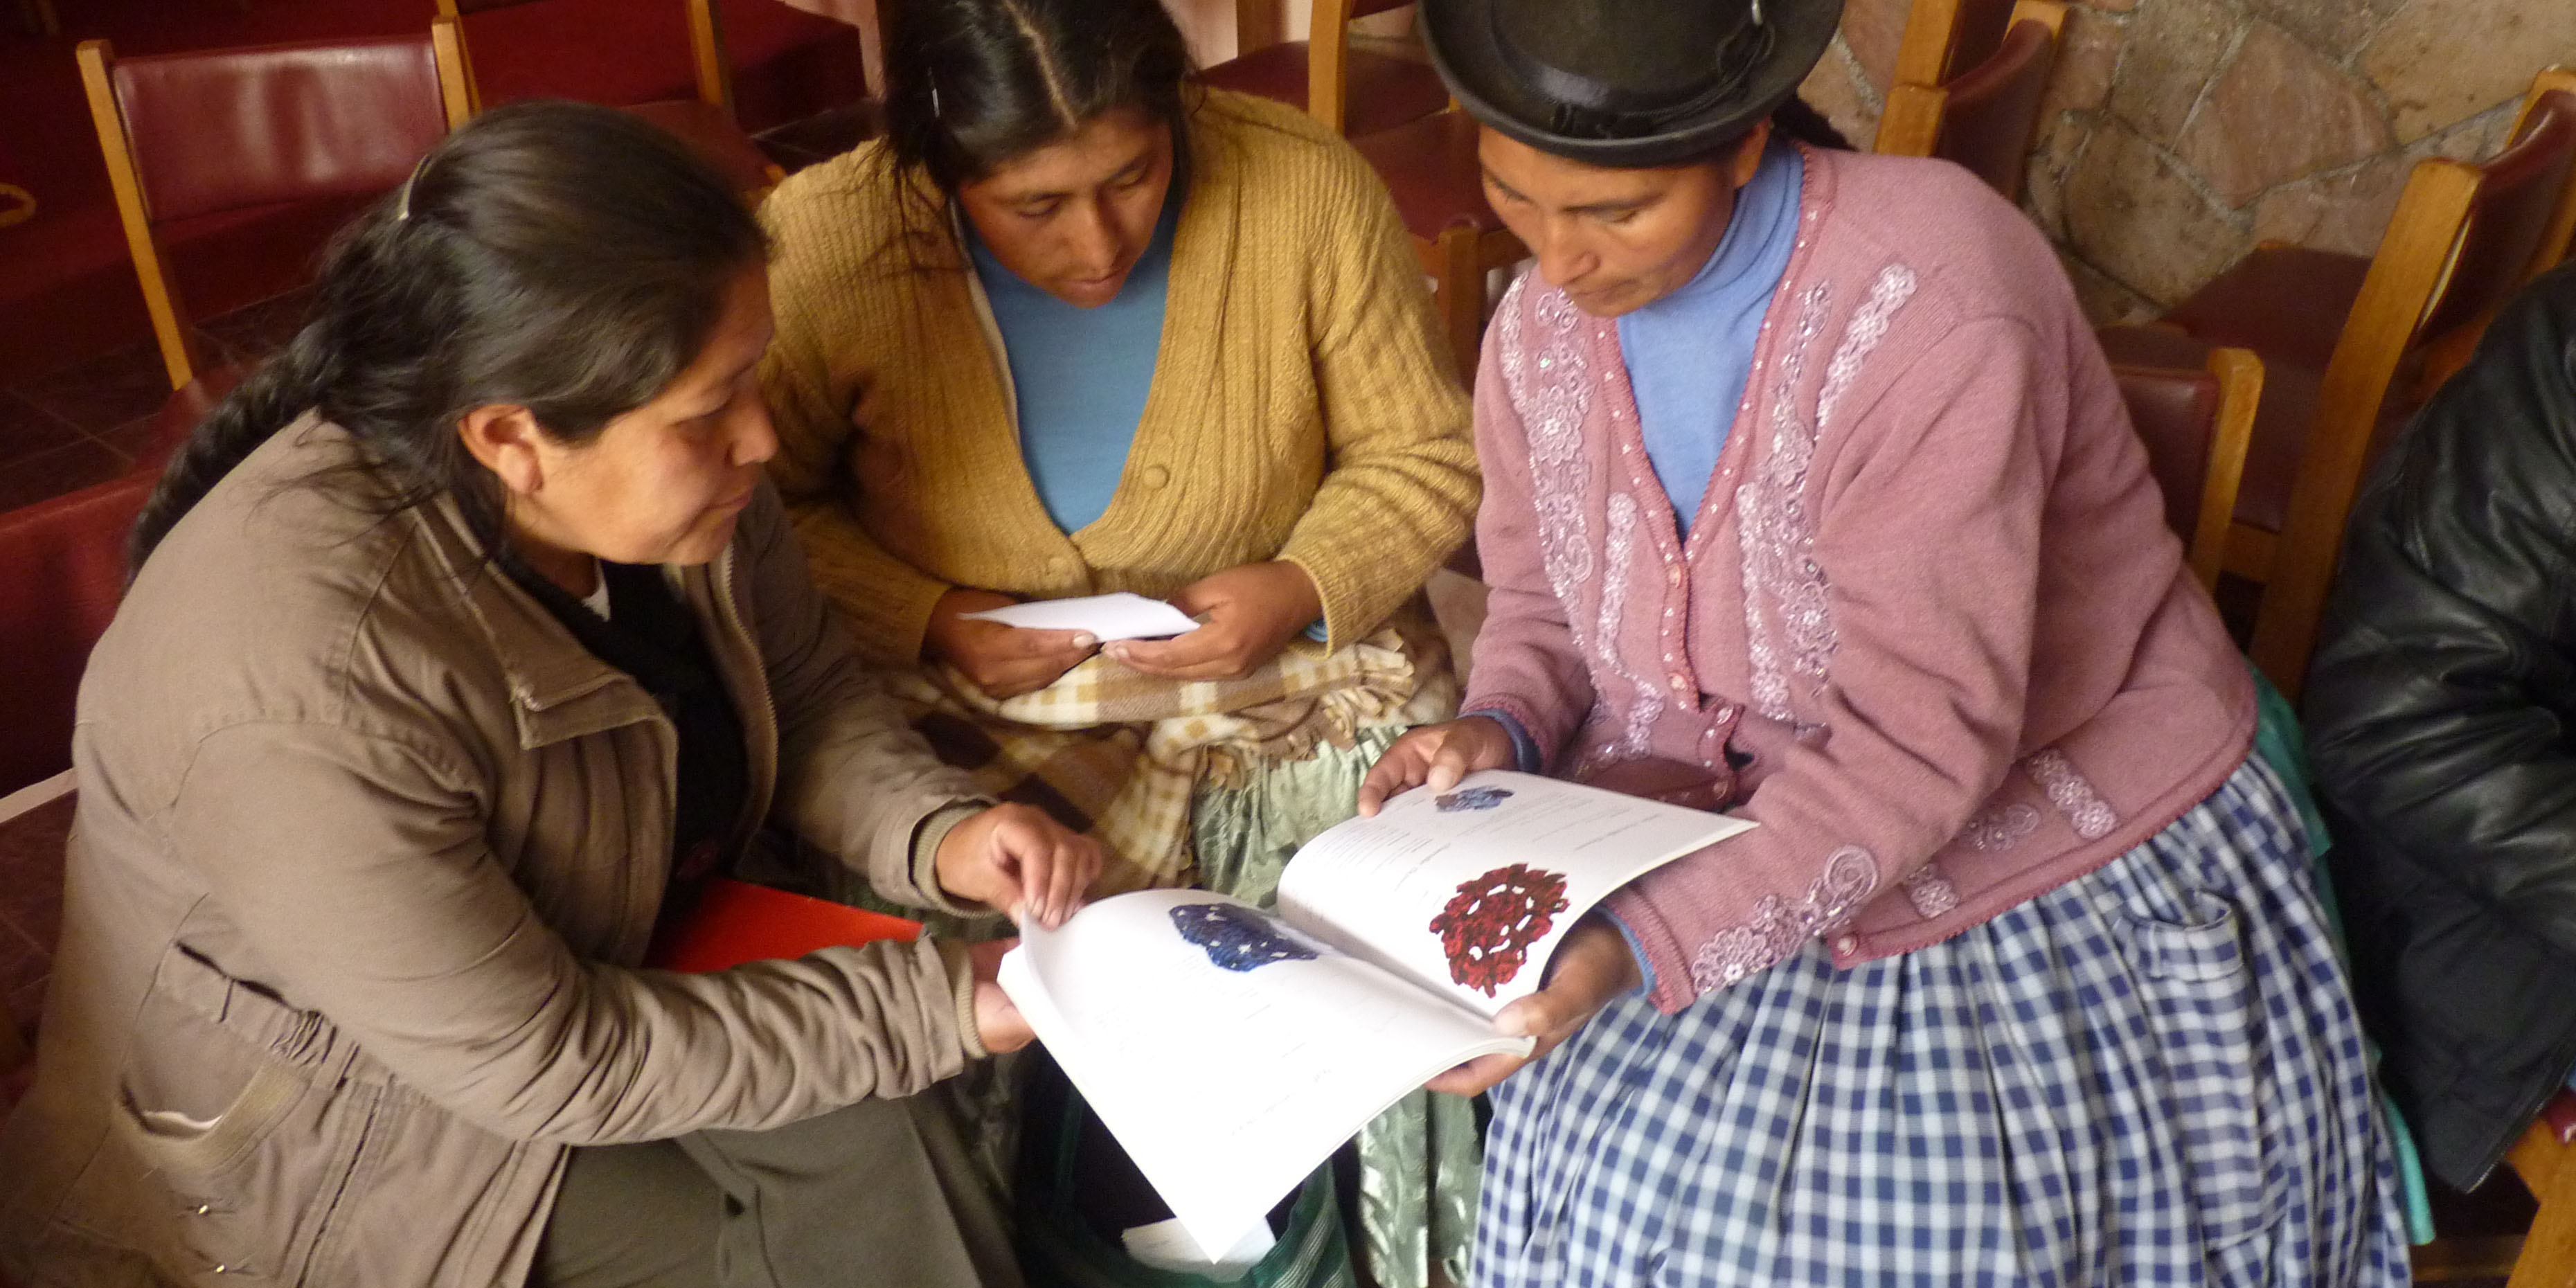 Small producers capacities in sustainable businesses were developed